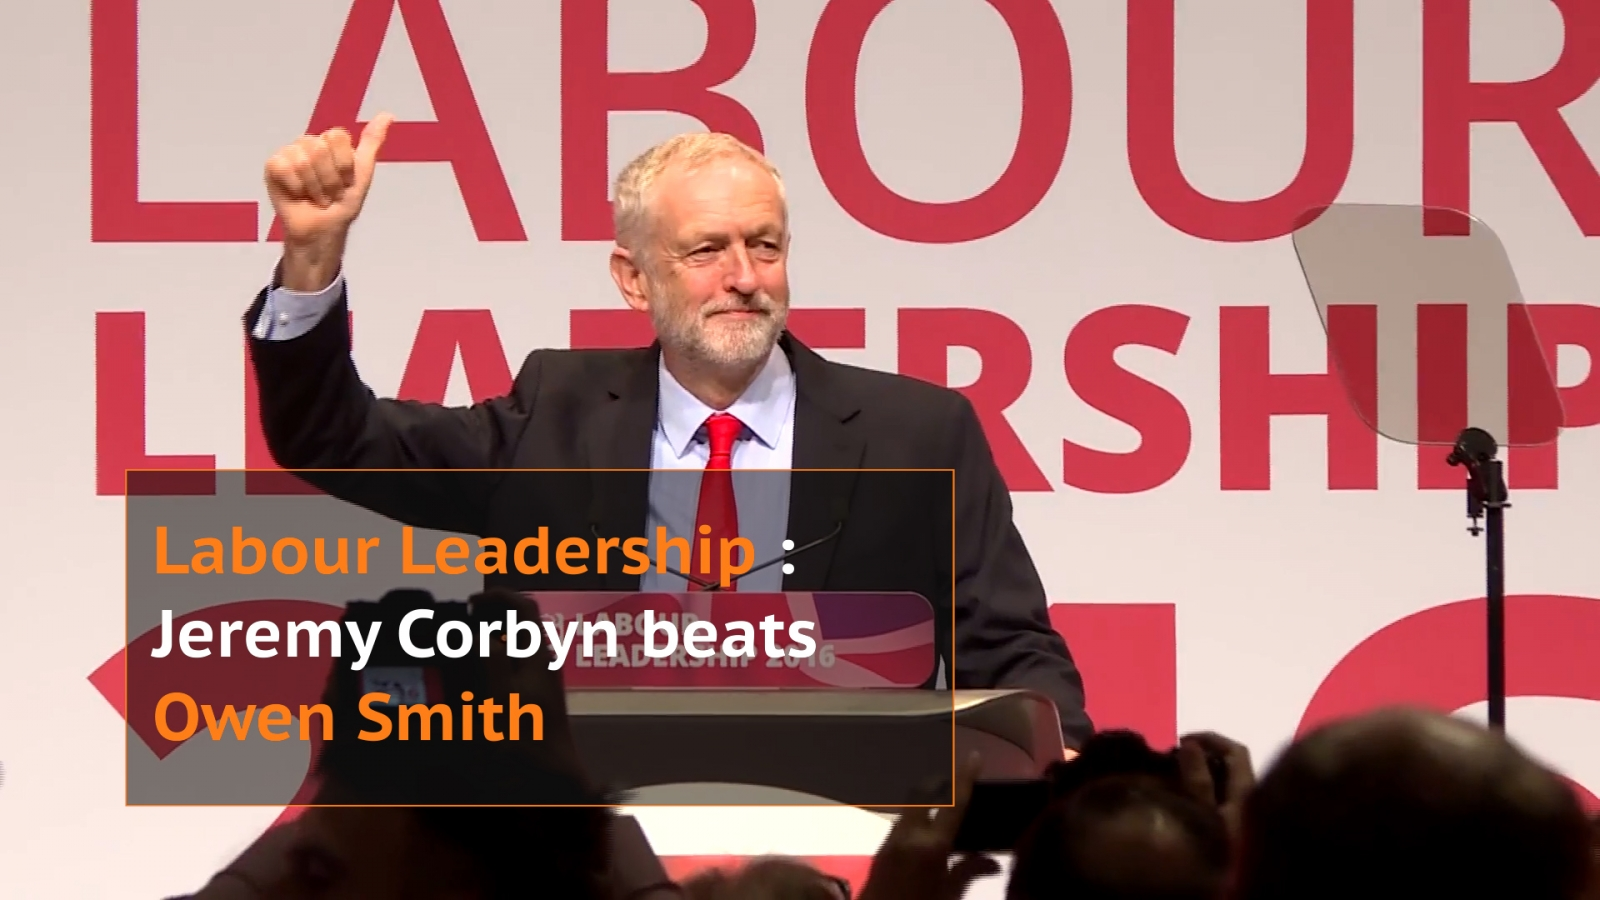 Jeremy Corbyn celebrates leadership victory